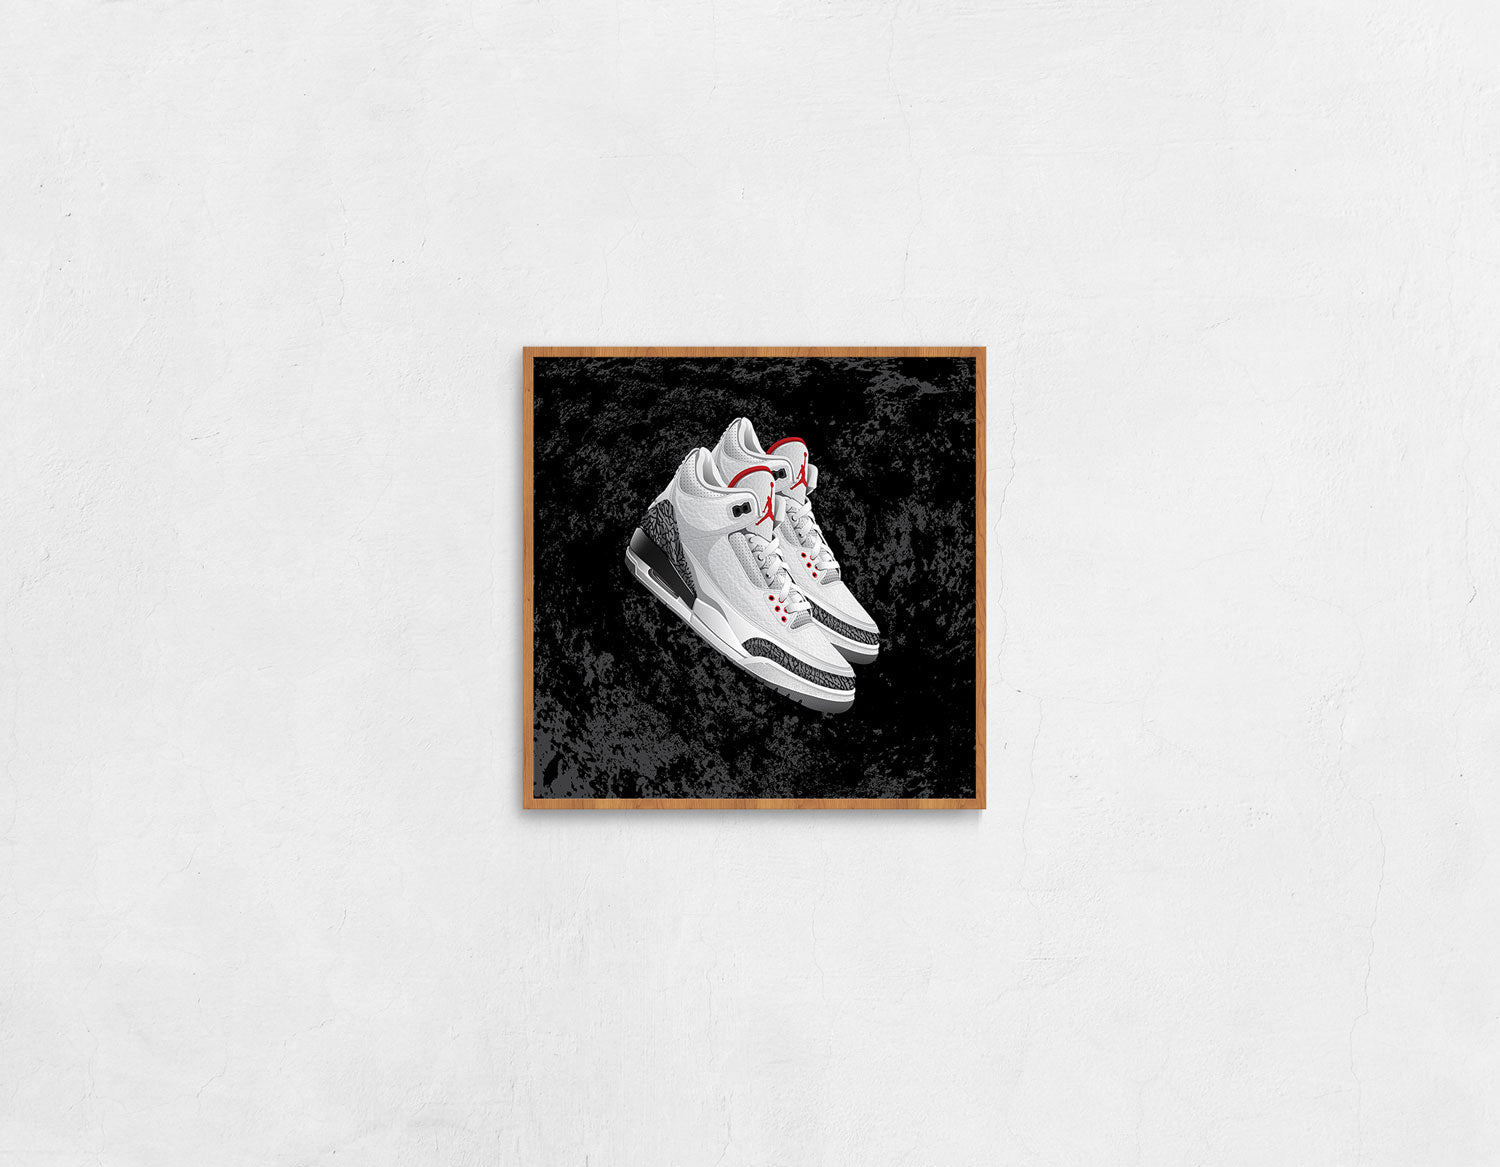 Stand-Alone Framed Medium Sized Sneaker Art Print of the Air Jordan 3 Cement